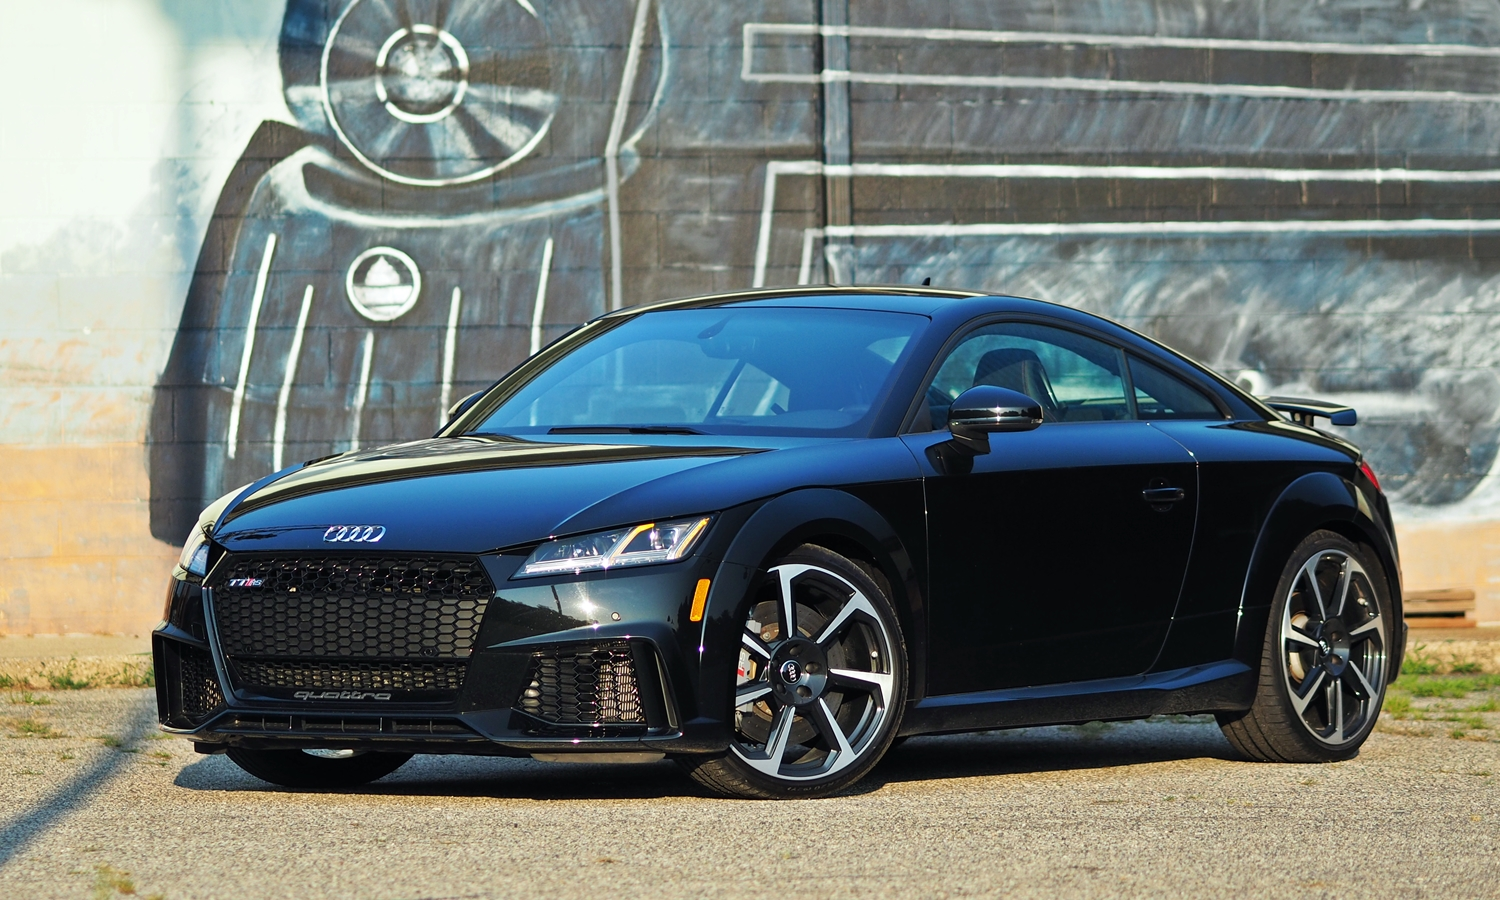 Audi TT RS front quarter view